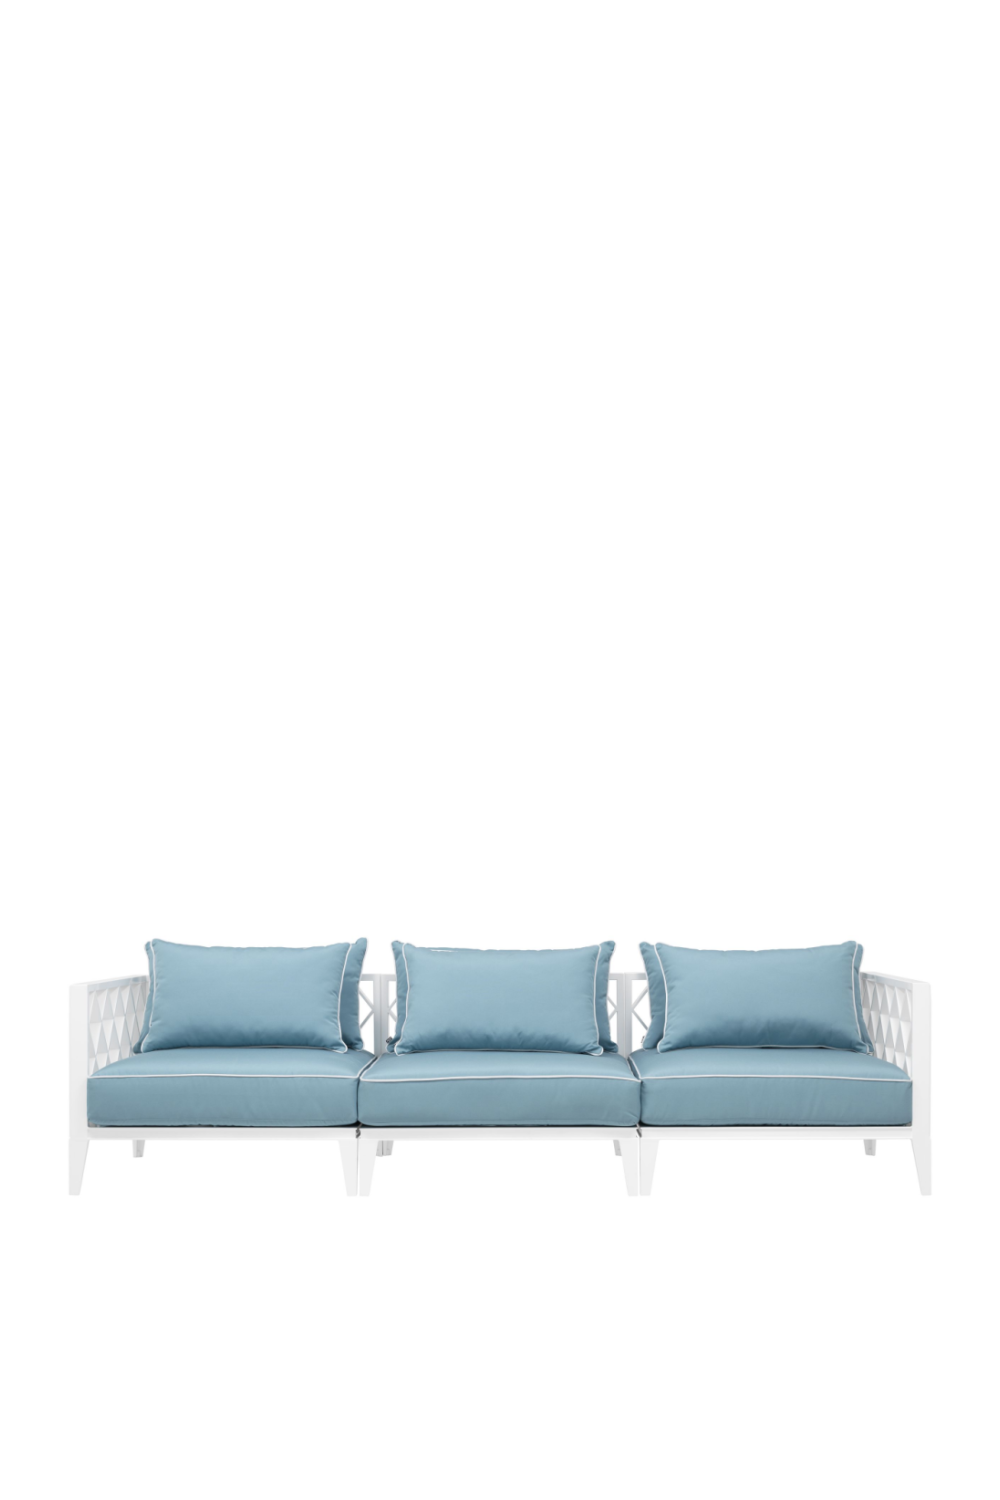 3-Seater Outdoor Sunbrella Sofa | Eichholtz Ocean Club